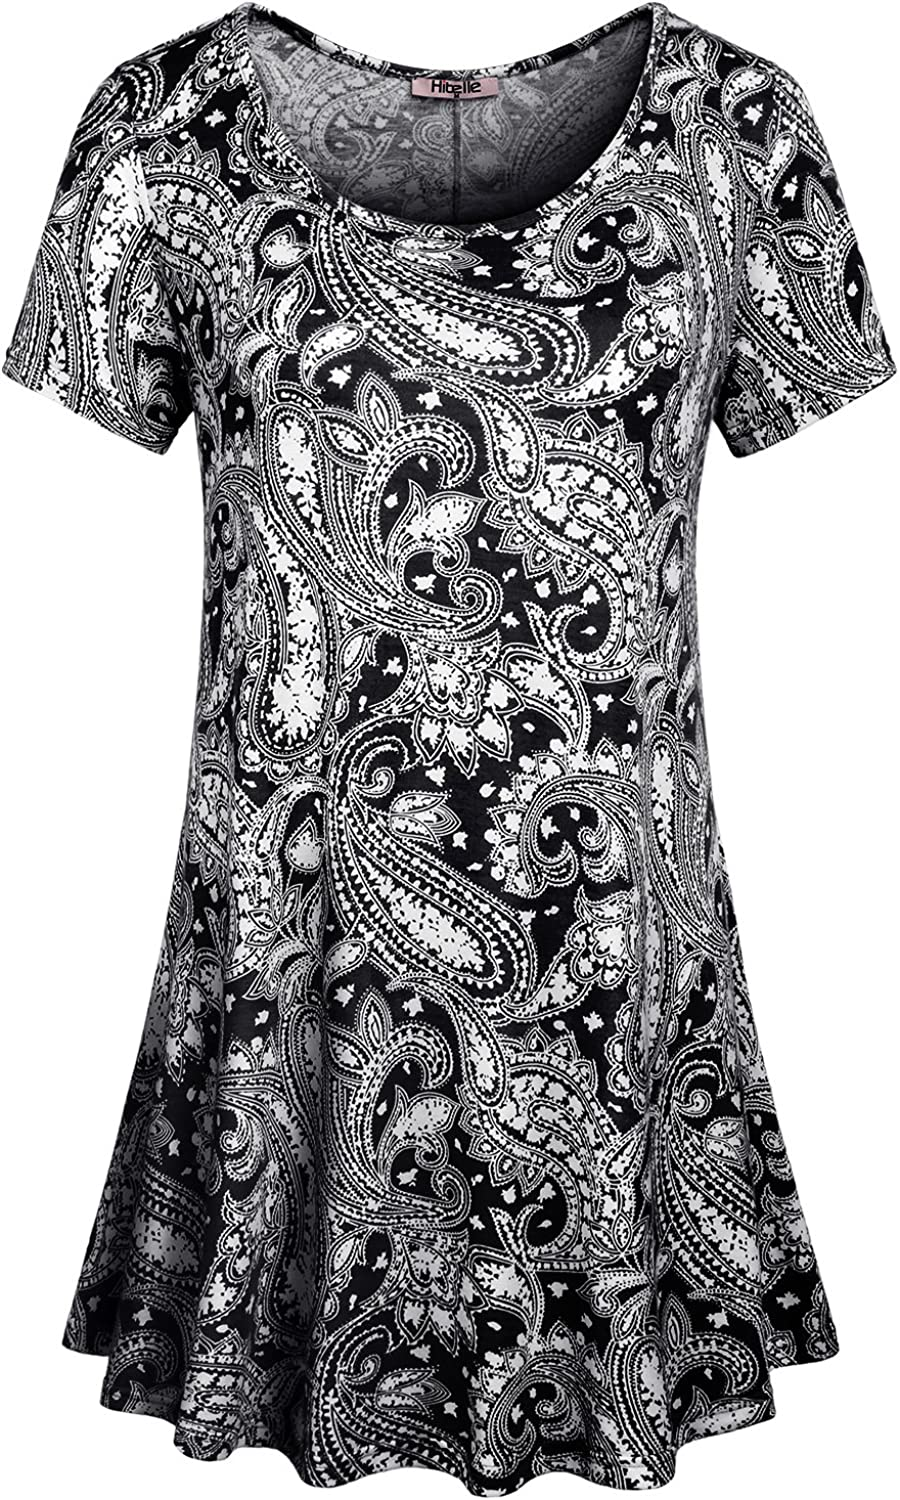 Hibelle Women's Crew Neck Short Sleeve Printed Flared Tunic Tops